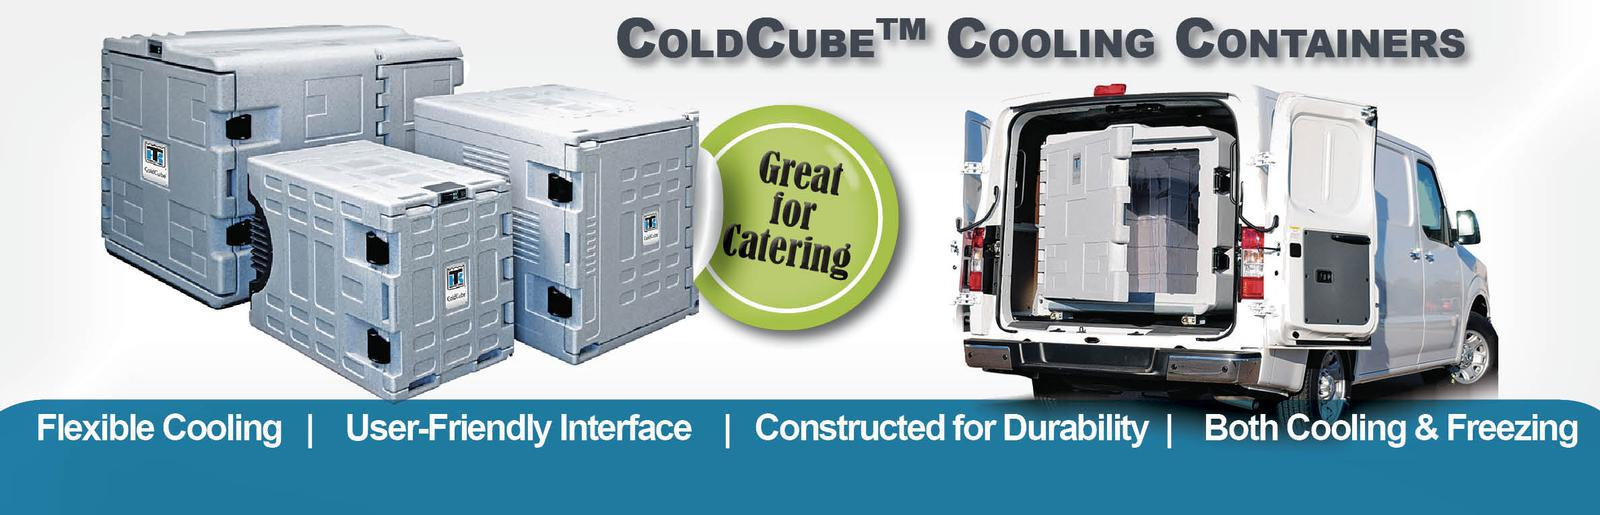 Thermo King Cold Cube